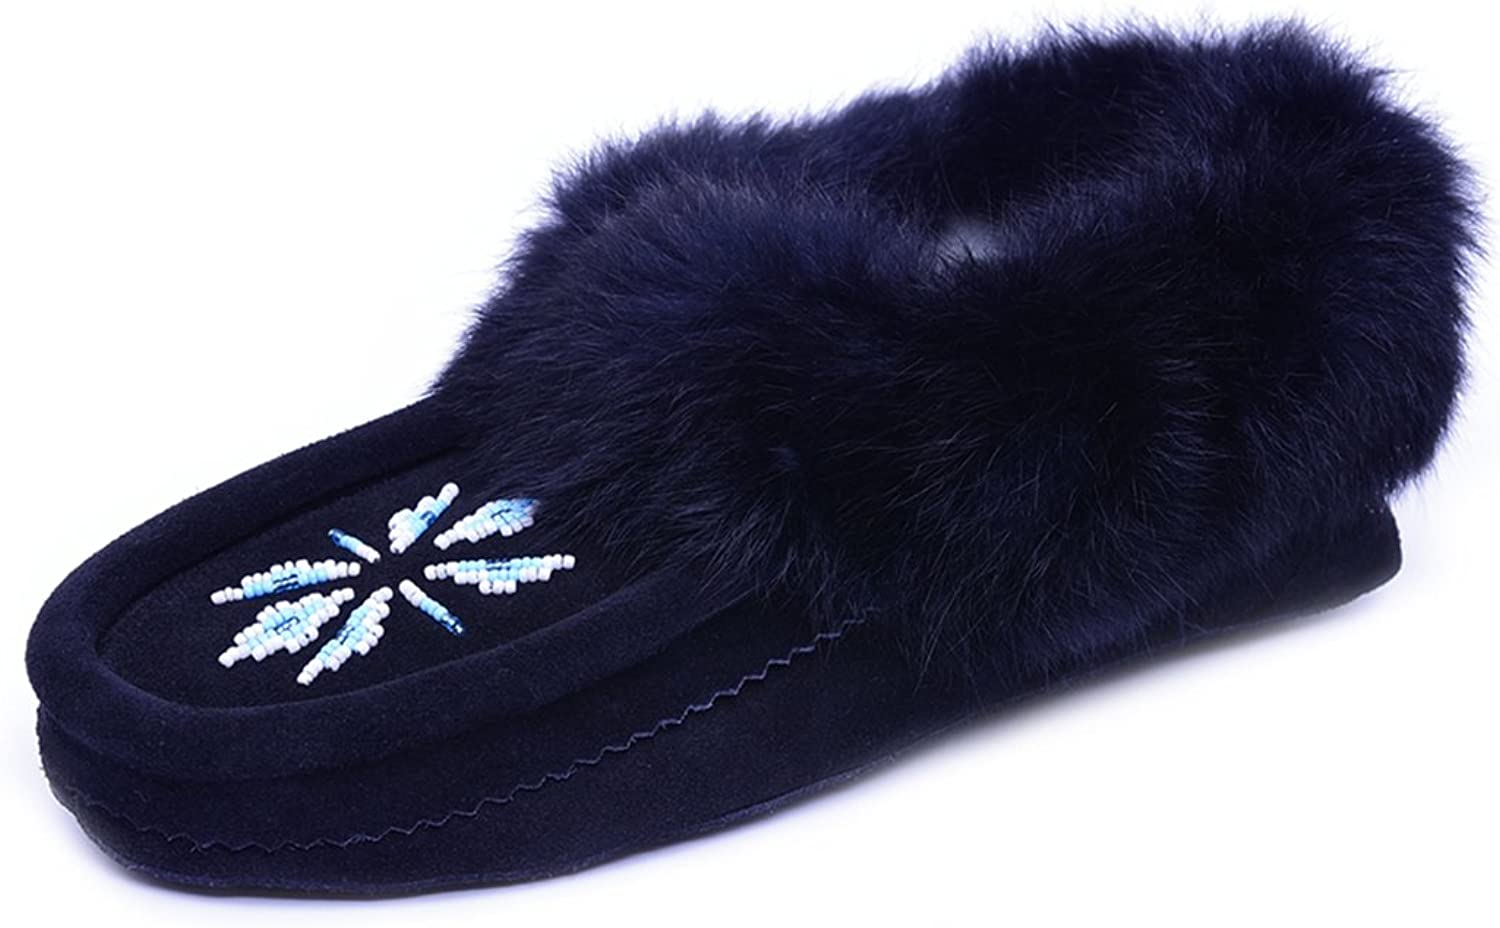 Eucoz Suede Moccasin Women Slippers with Rabbit Fur Collar, Soft Sole, Cozy Warm Fleece Lined Black